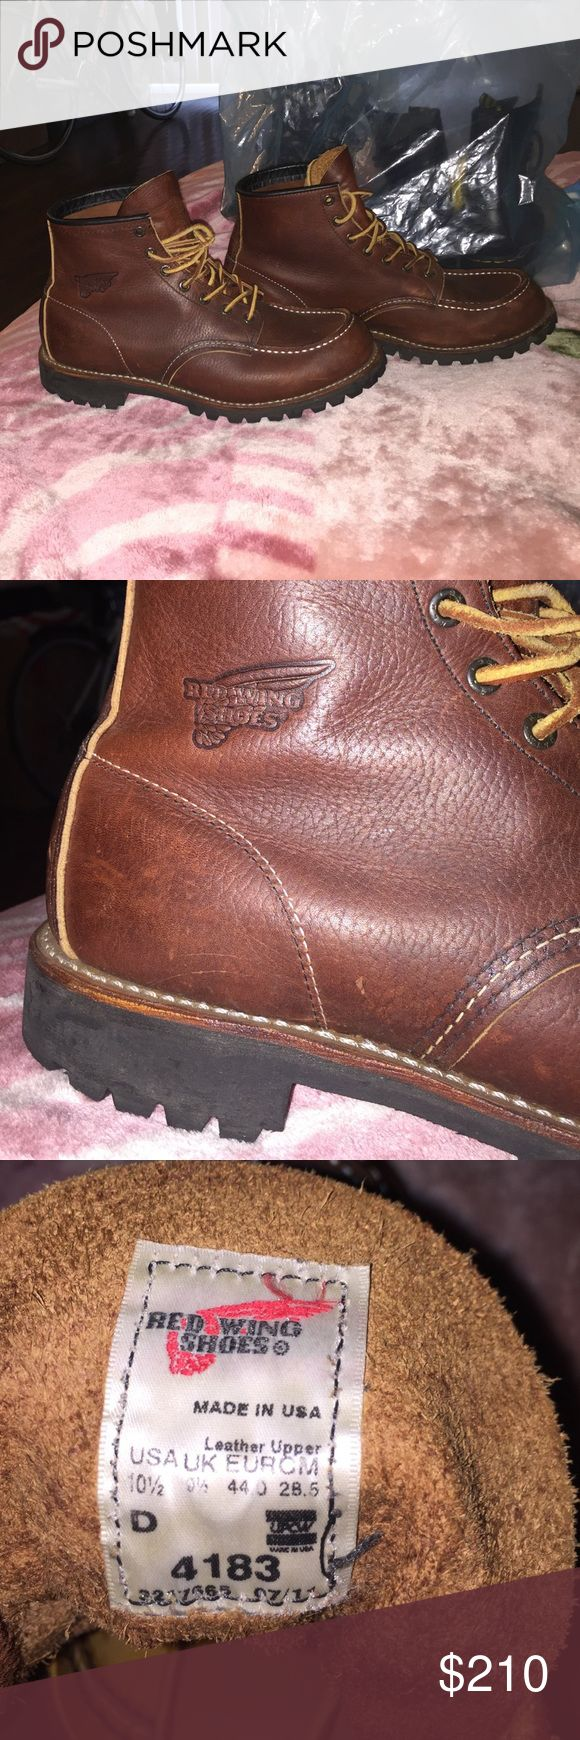 Red Wing Boots Size 10.5 Red Wing Boots Size 10.5. Brown. Like new. Very good condition. Retail Price: $350. Red Wing Shoes Shoes Boots